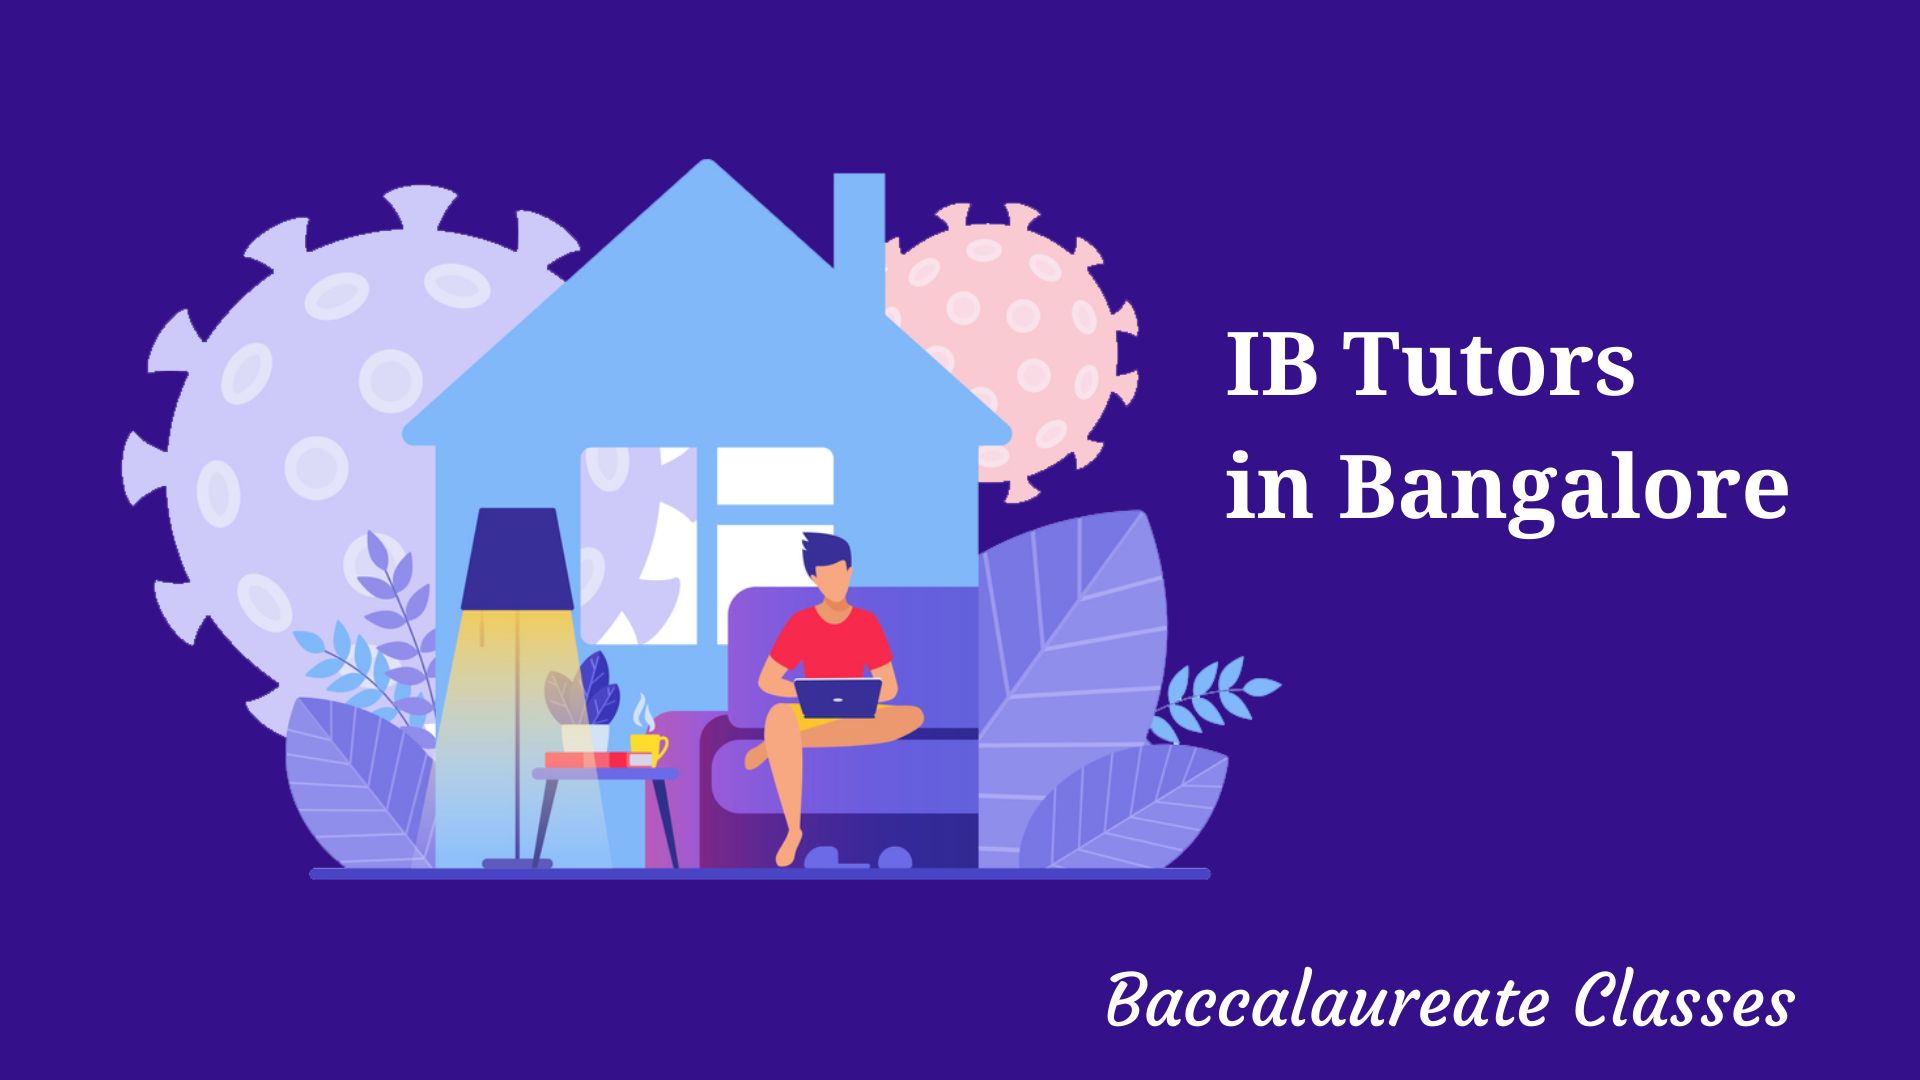 IB Tutors in Bangalore